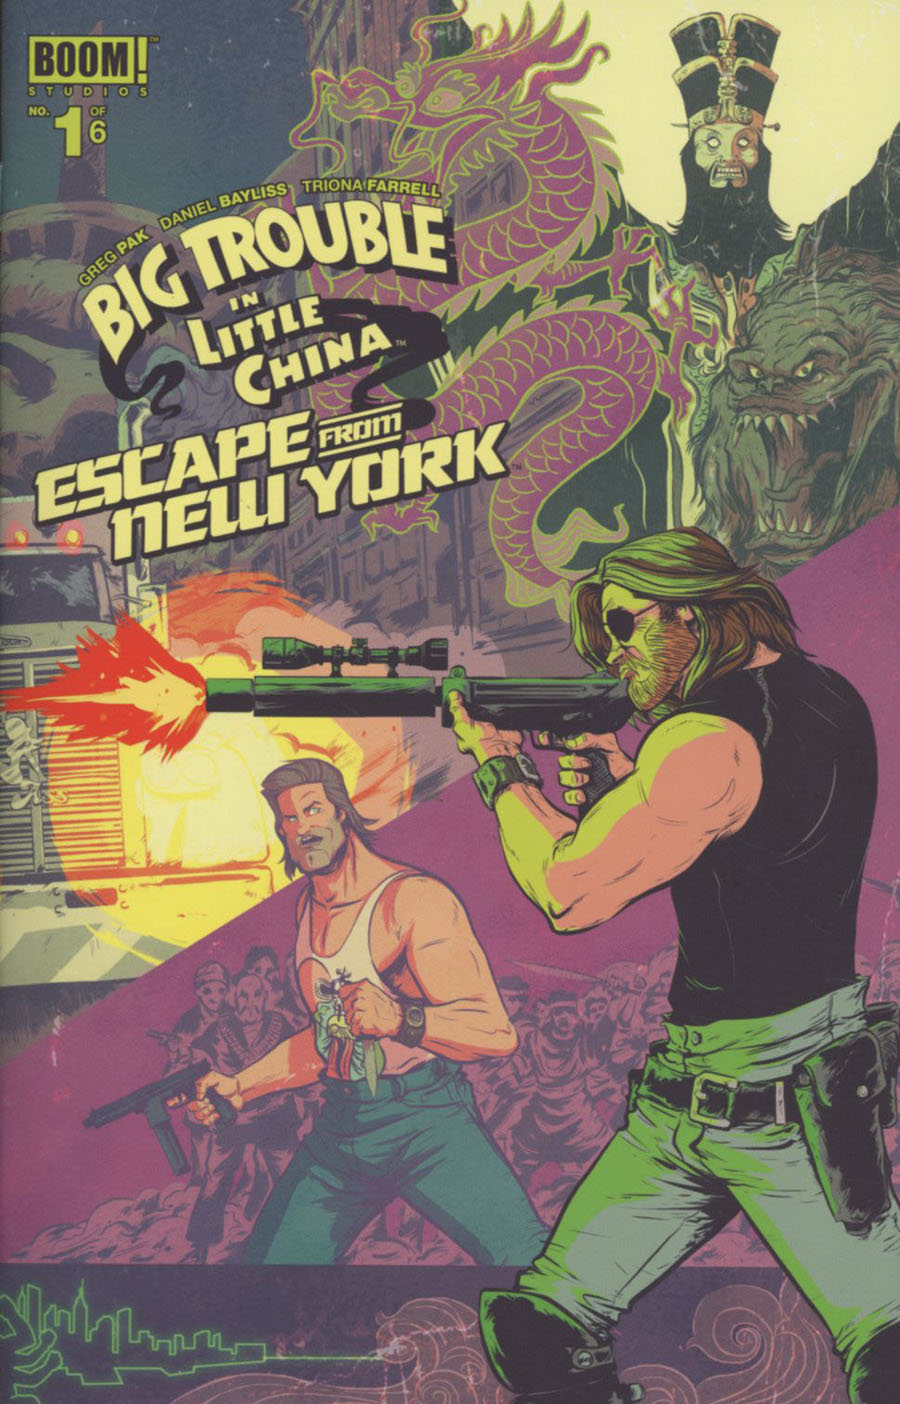 Big Trouble In Little China Escape From New York #1 Cover B Regular Daniel Bayliss Snake Plissken Foreground Cover